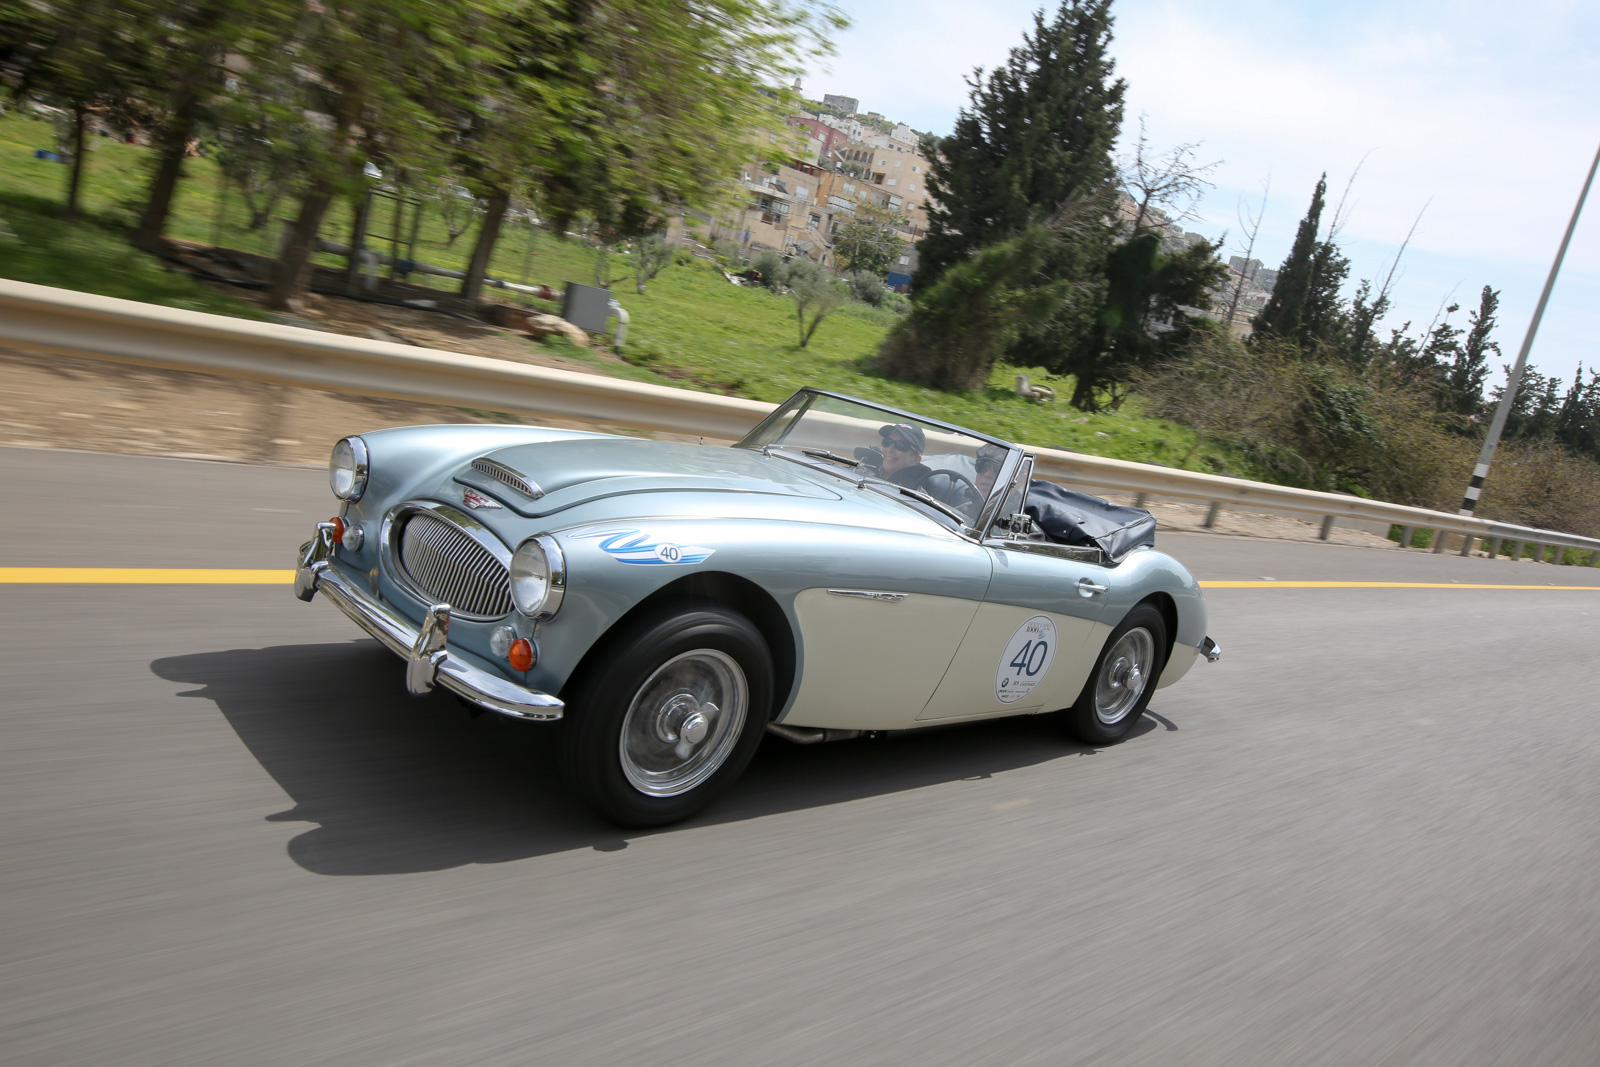 Austin Healey 3000 BJ8 1964, USA